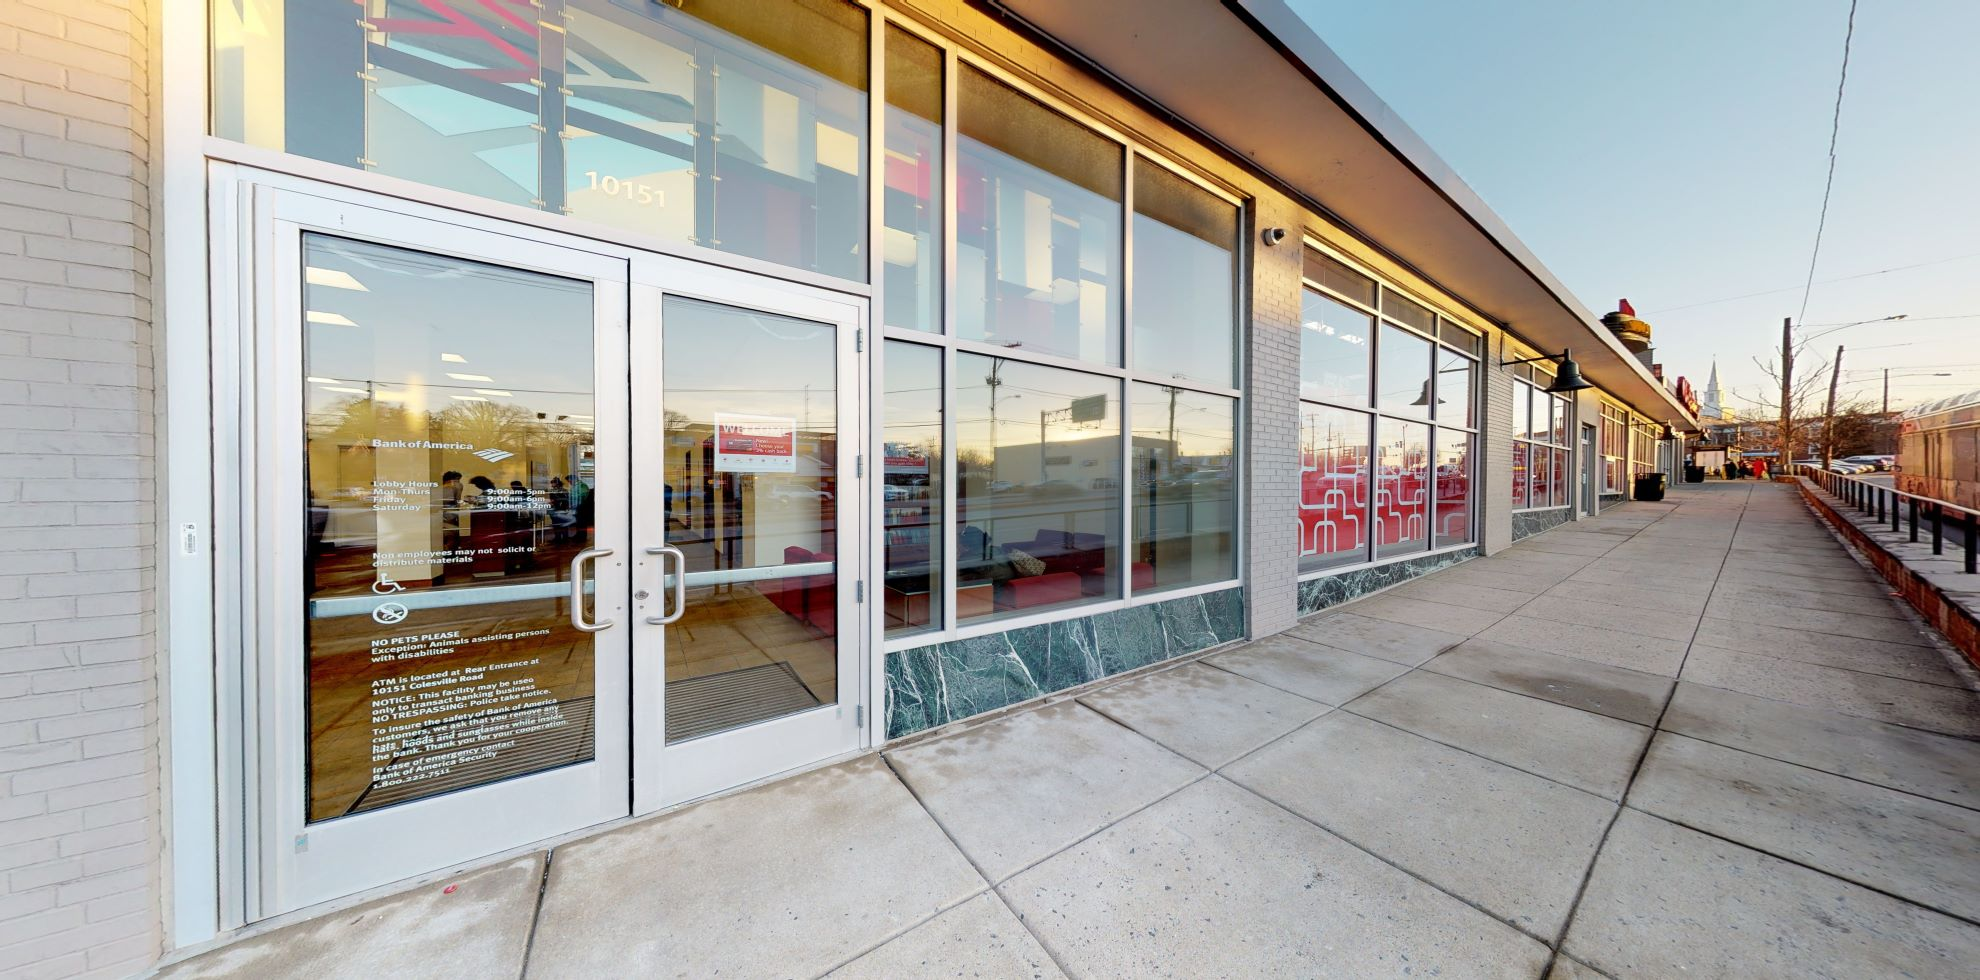 Bank of America financial center with walk-up ATM | 10151 Colesville Rd, Silver Spring, MD 20901